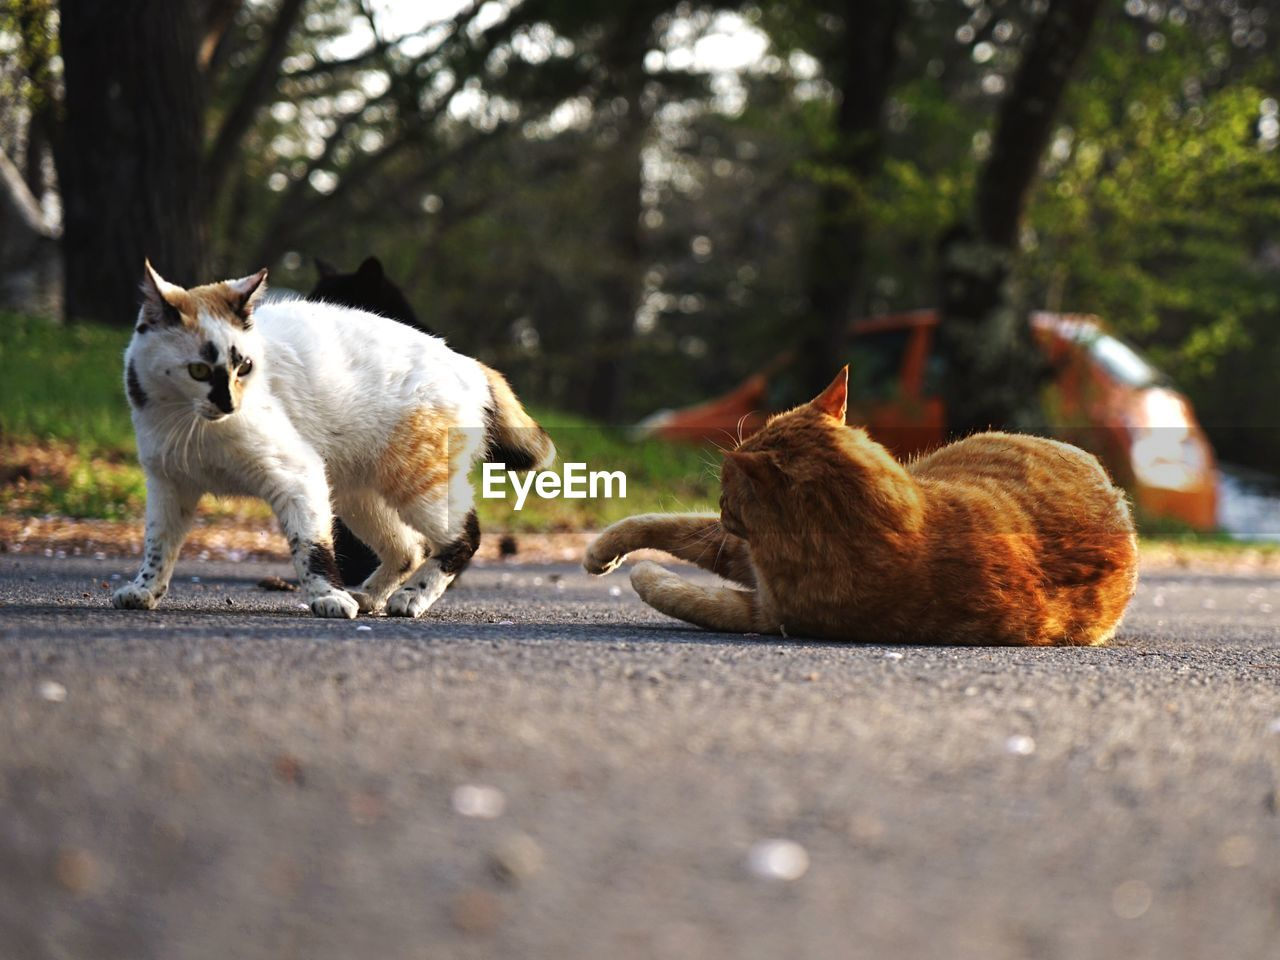 mammal, animal themes, domestic animals, pets, domestic, animal, road, group of animals, vertebrate, two animals, canine, dog, tree, day, city, selective focus, plant, nature, transportation, no people, outdoors, surface level, ginger cat